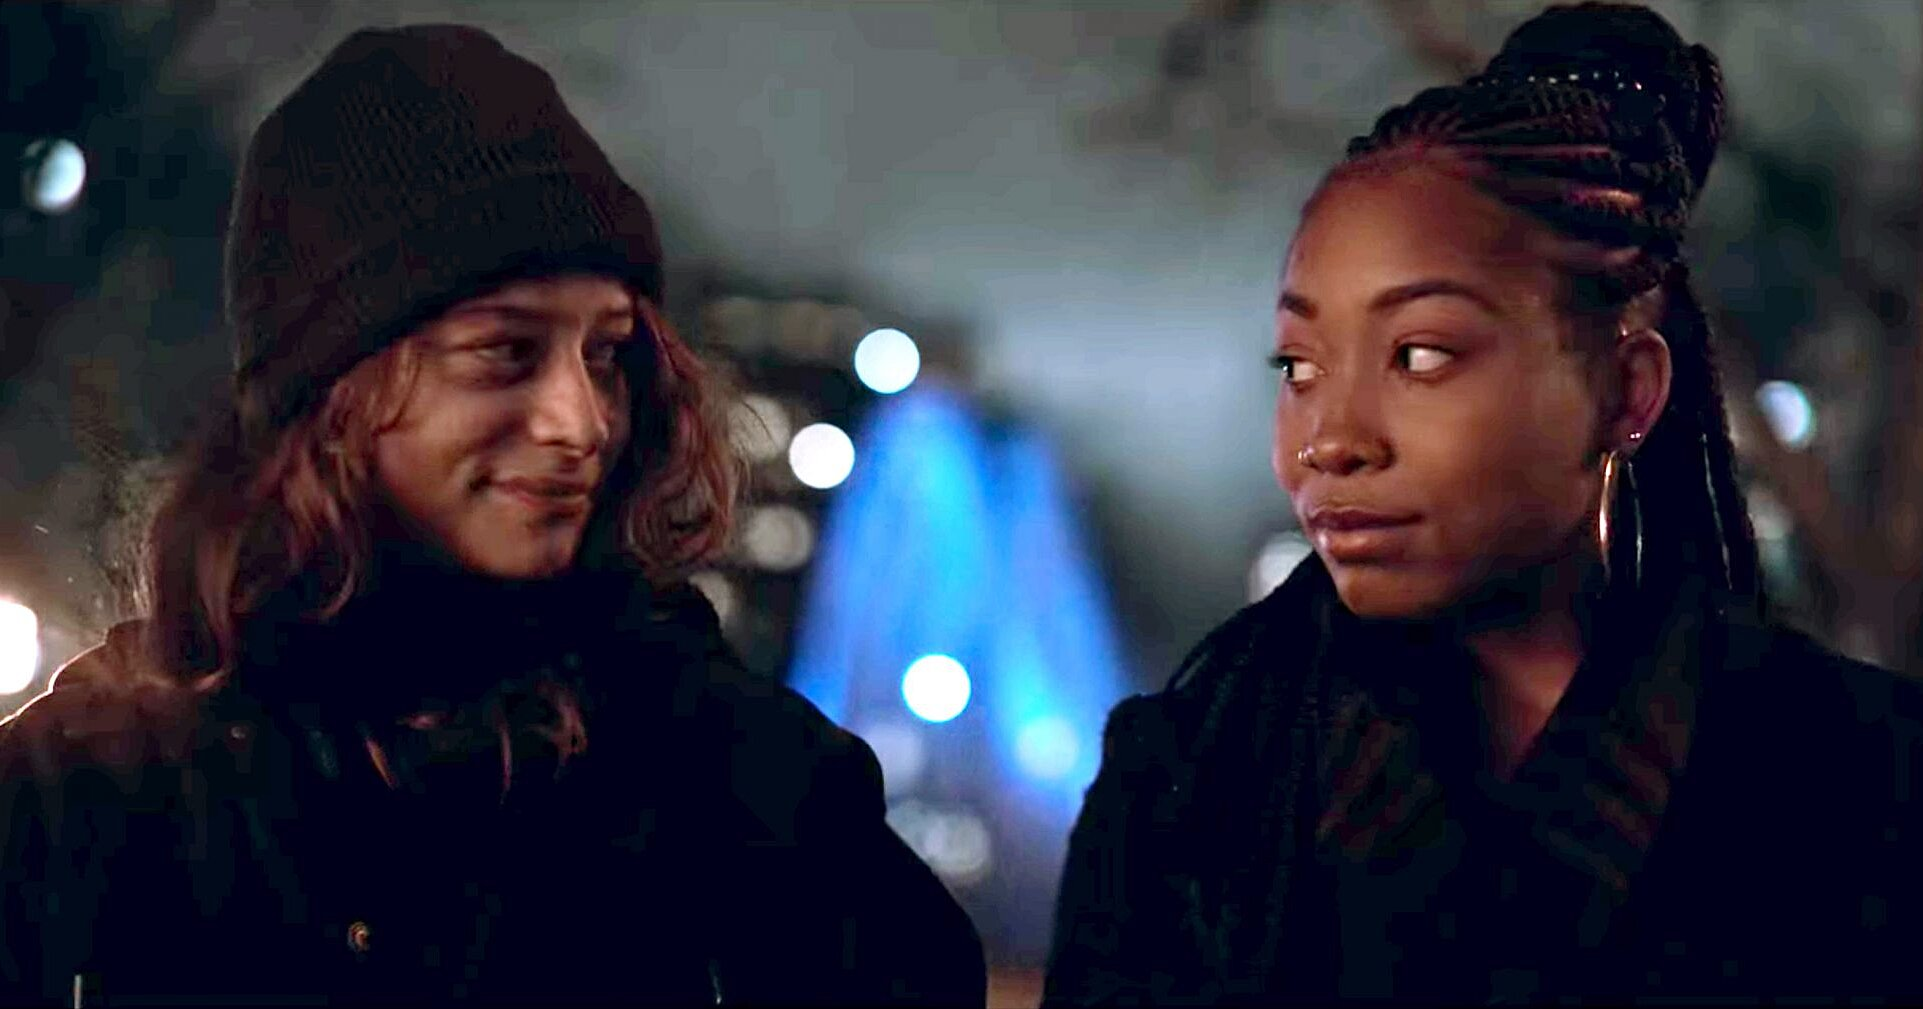 'Grand Army' stars Odley Jean and Odessa A'Zion unpack the 'weird dynamic' between their characters